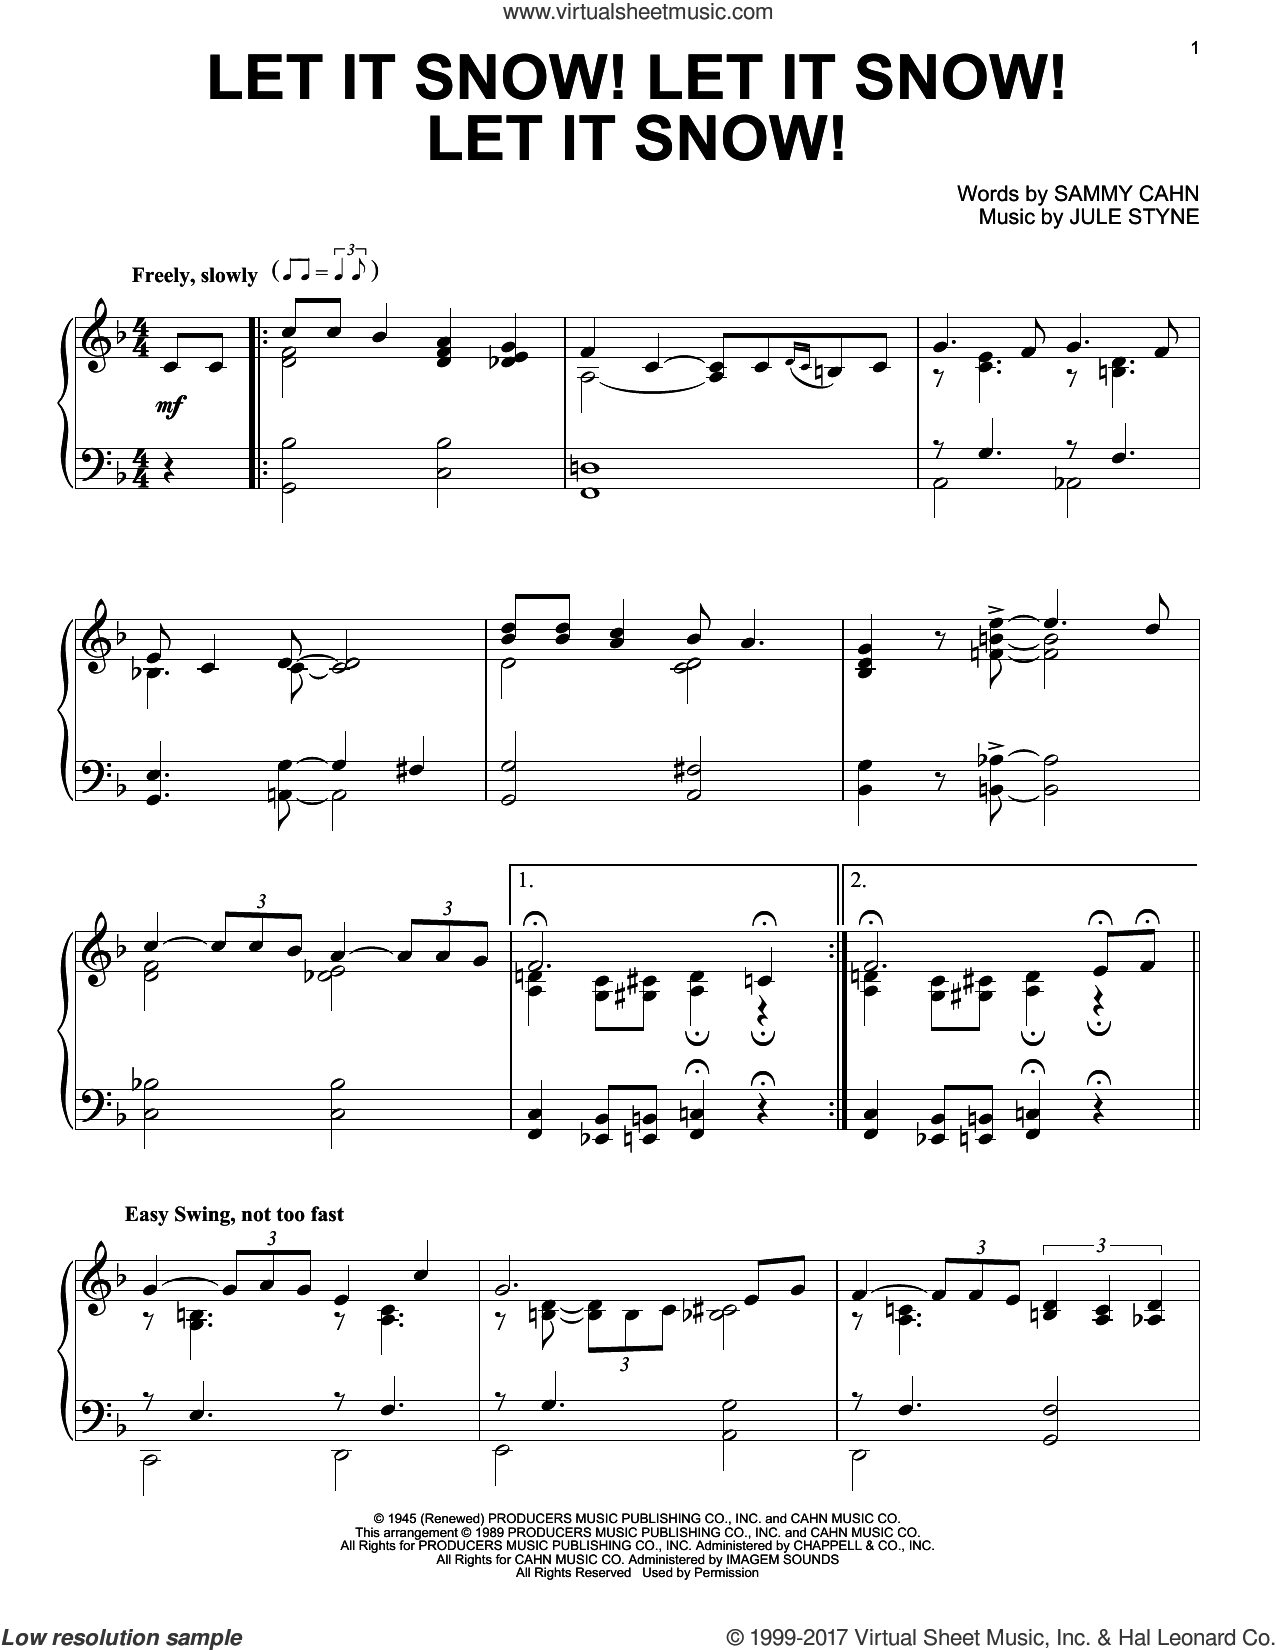 Let It Snow! Let It Snow! Let It Snow!, (intermediate) sheet music for piano solo by Sammy Cahn and Jule Styne, intermediate skill level